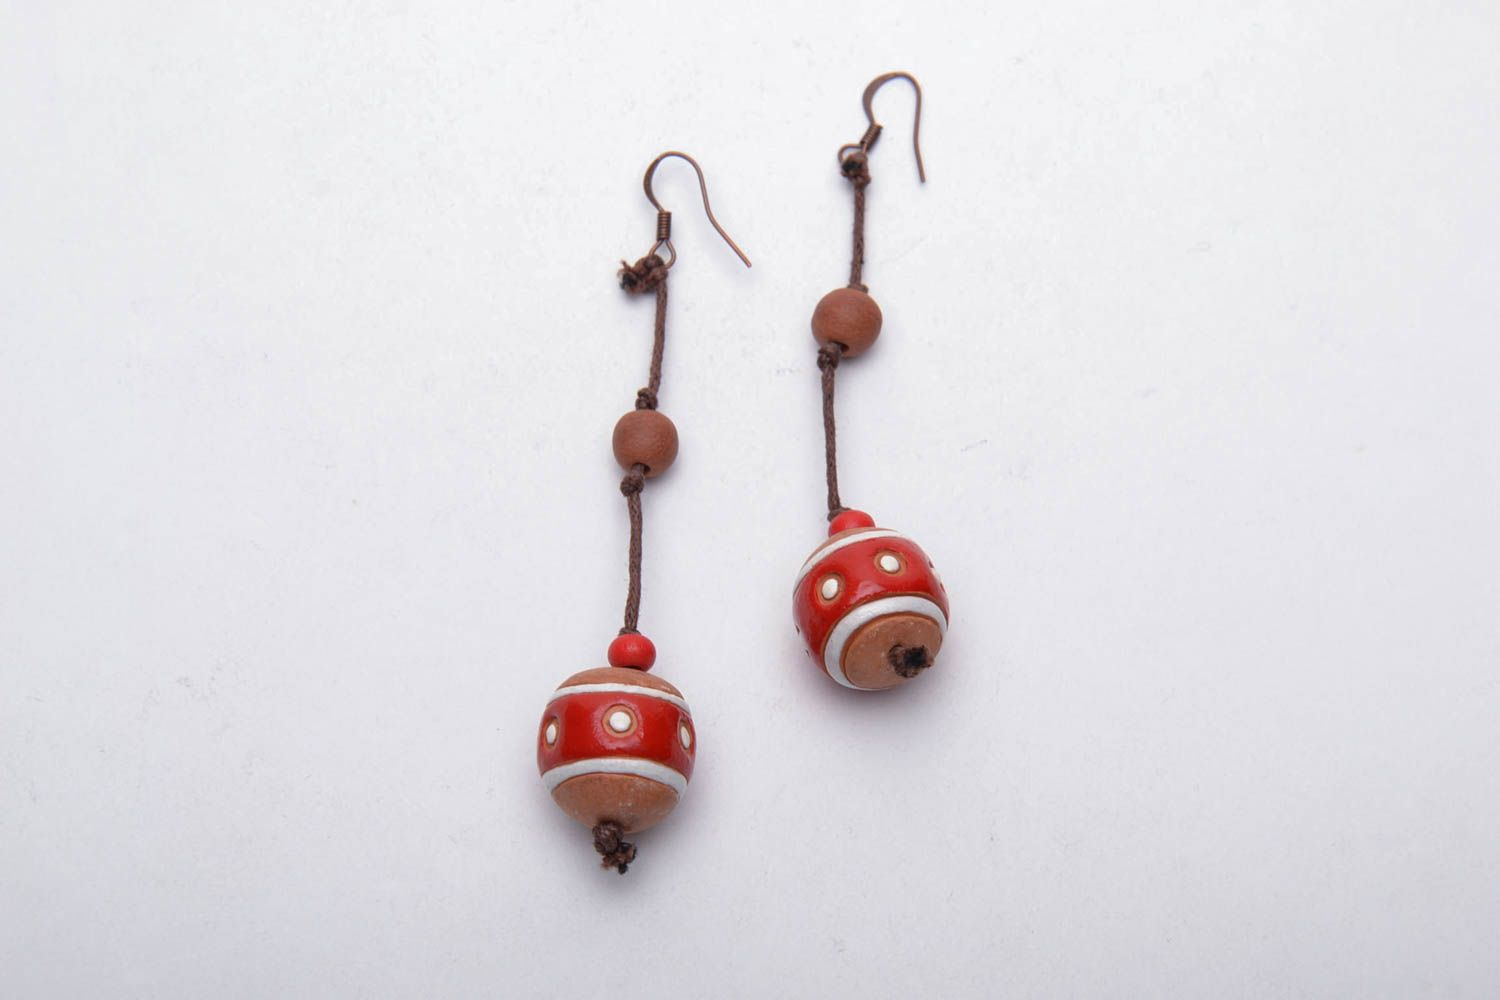 Ceramic ball earrings in eco style photo 3